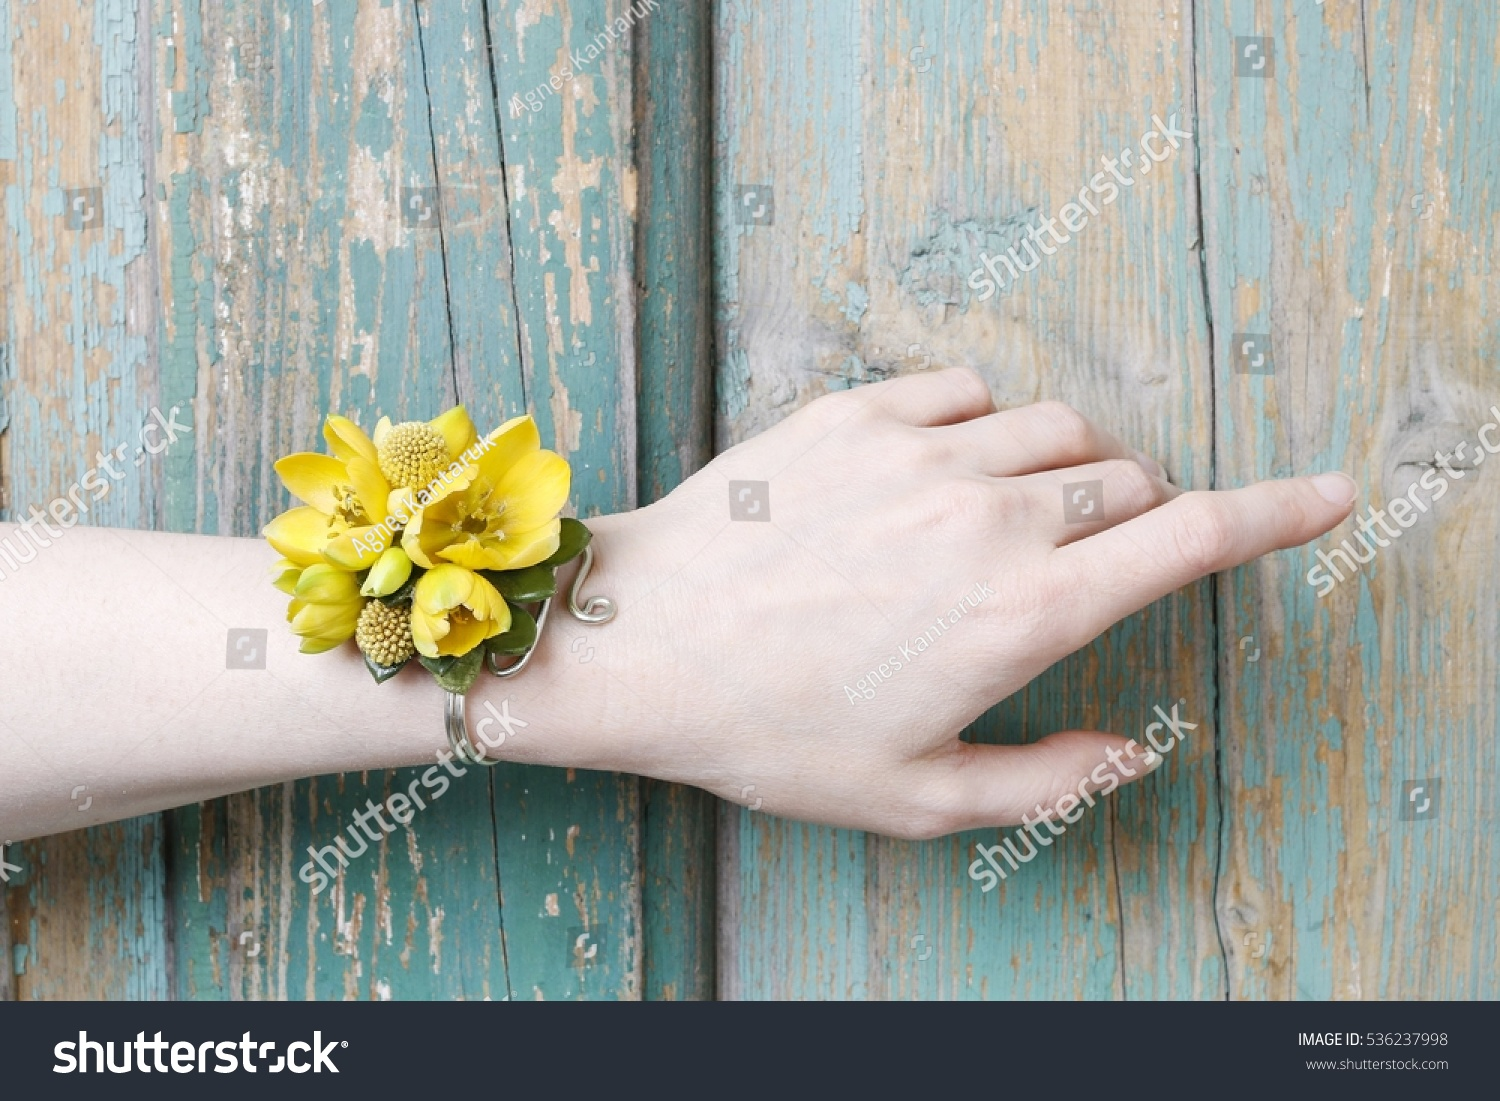 Wrist Corsage Made Yellow Flowers Stock Photo Edit Now 536237998